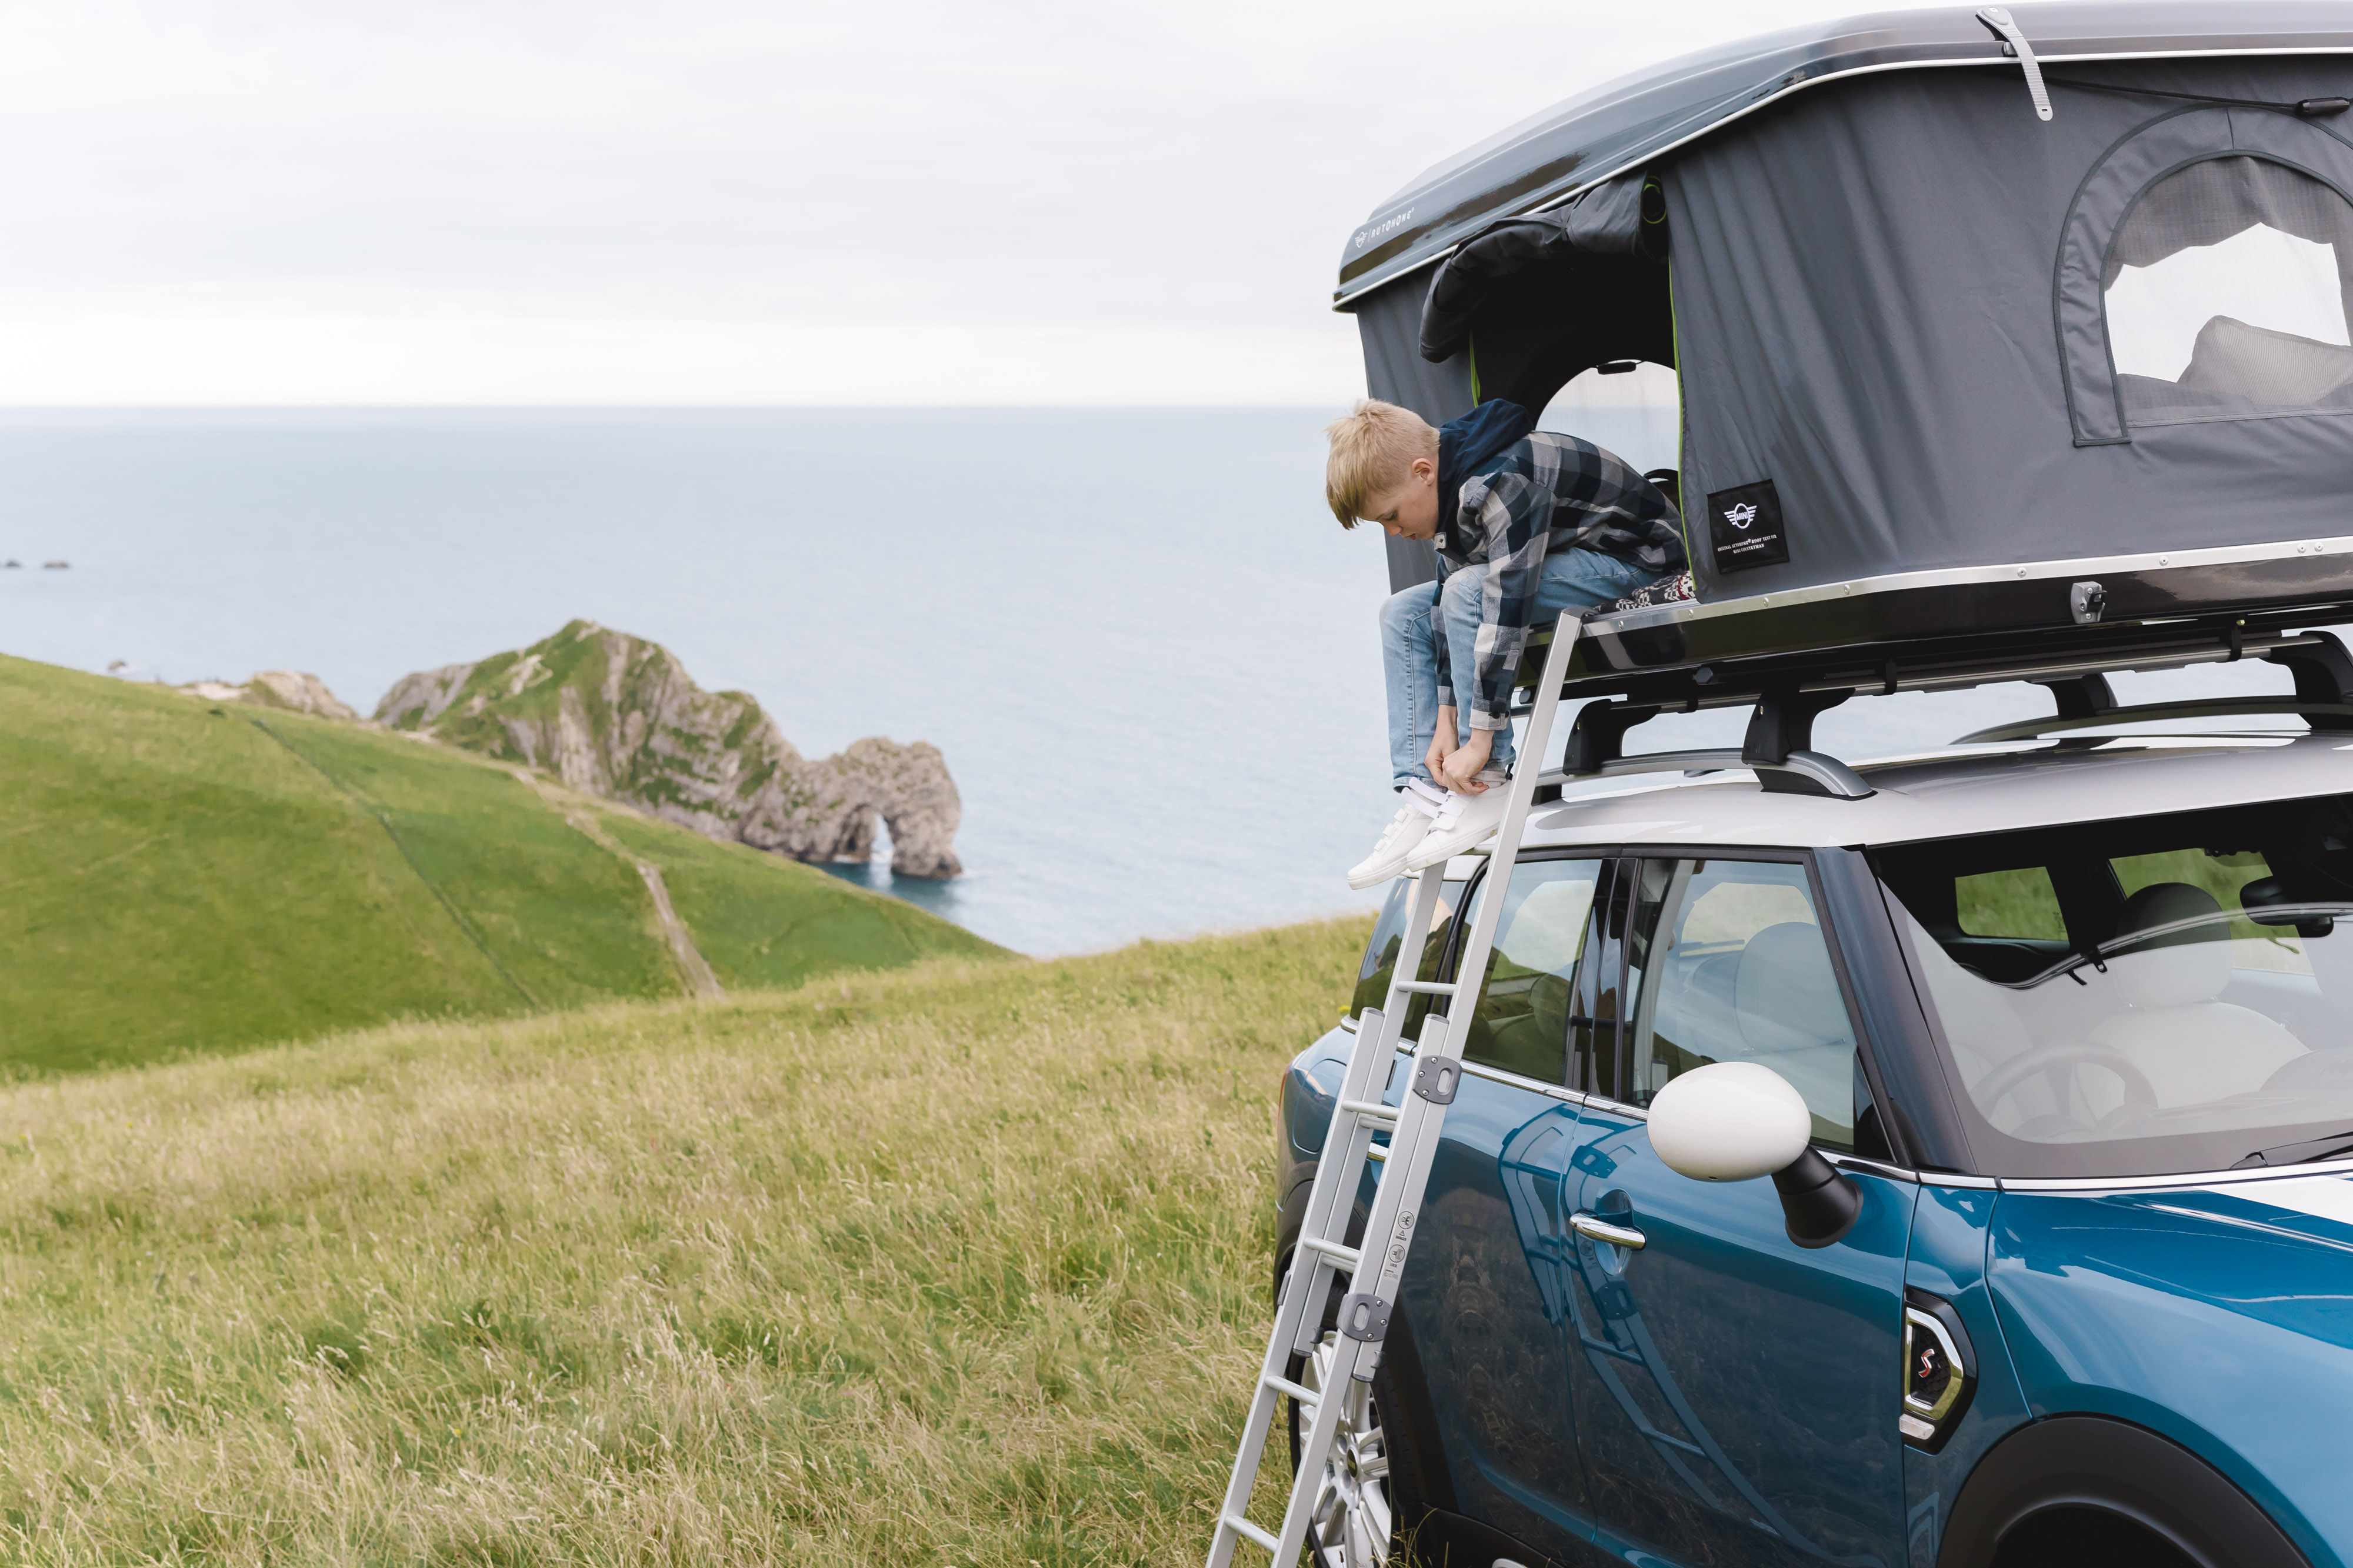 Win a stay in a car rooftop tent at incredible places of outstanding natural beauty in the UK. Image Finn Beales & Win a stay in a car rooftop tent at three incredible UK locations